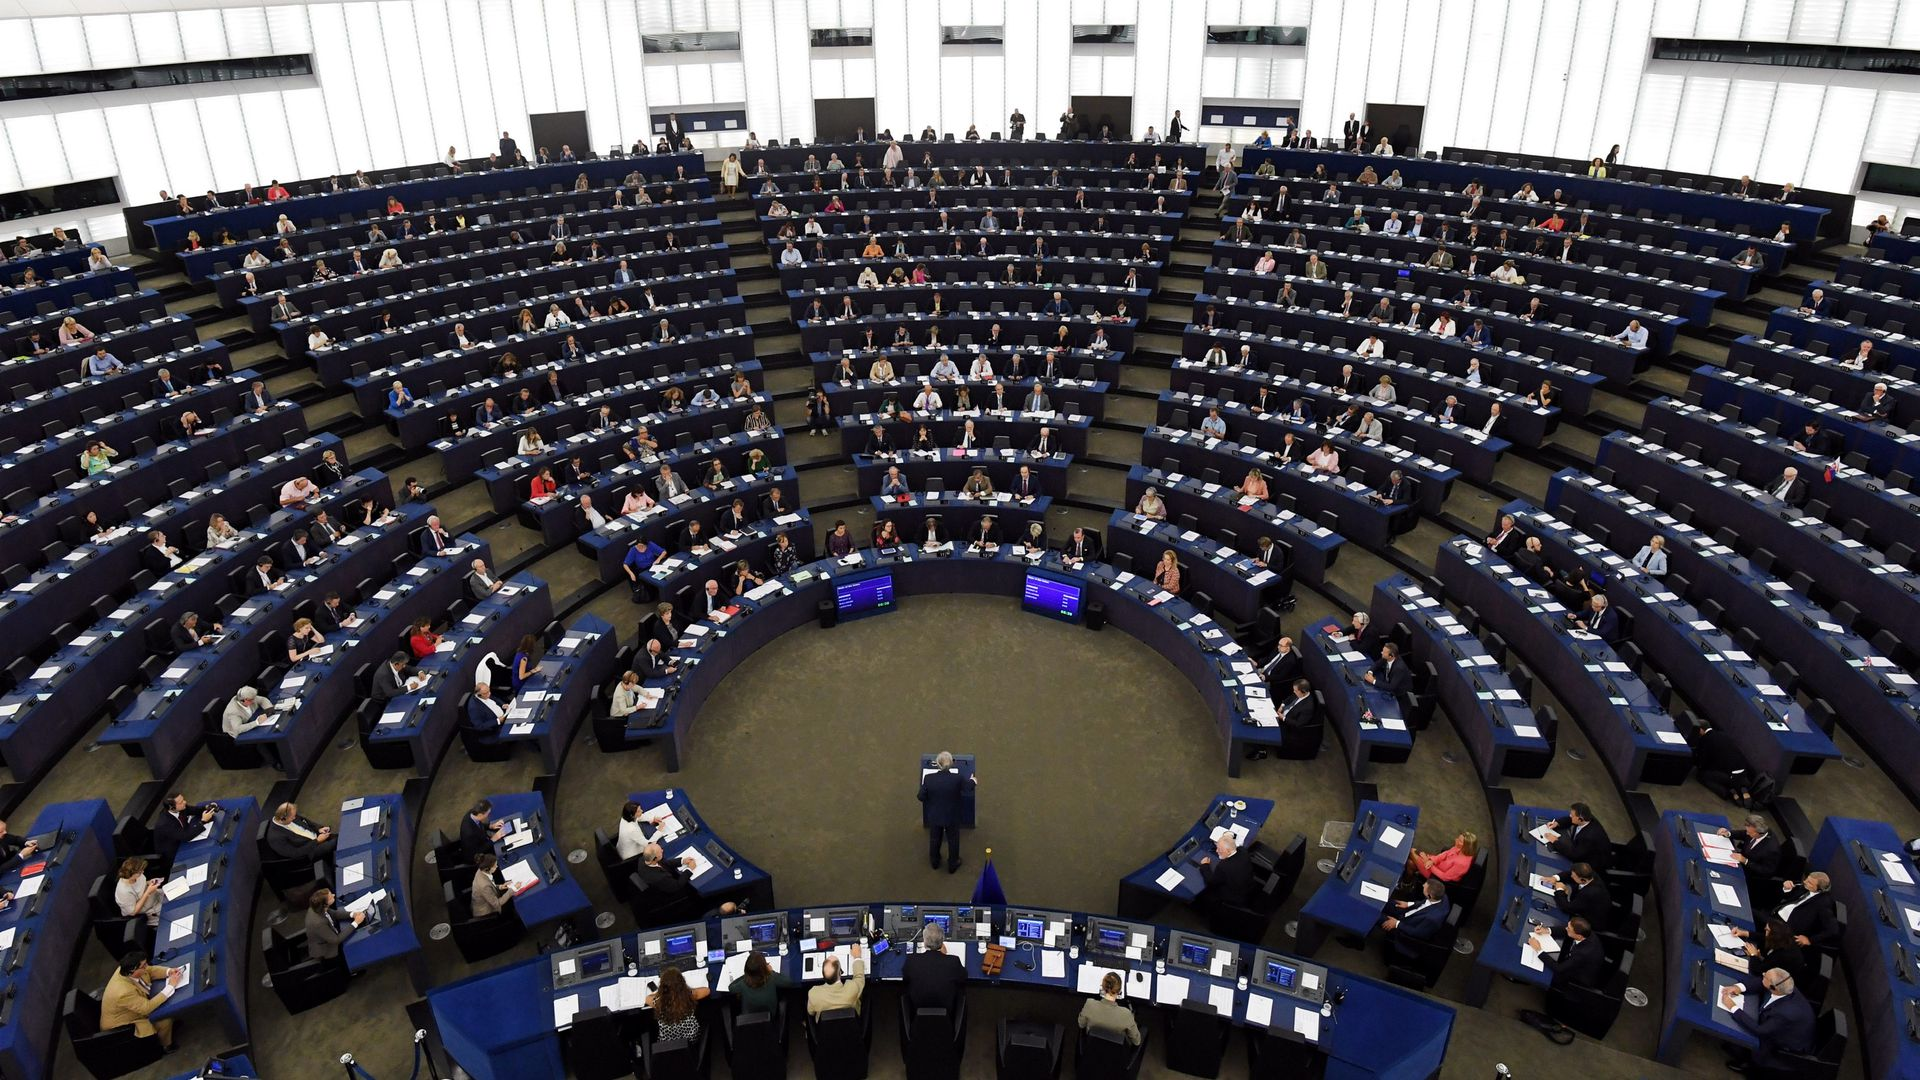 Rows of seats arranged in a circle at the European Parliament